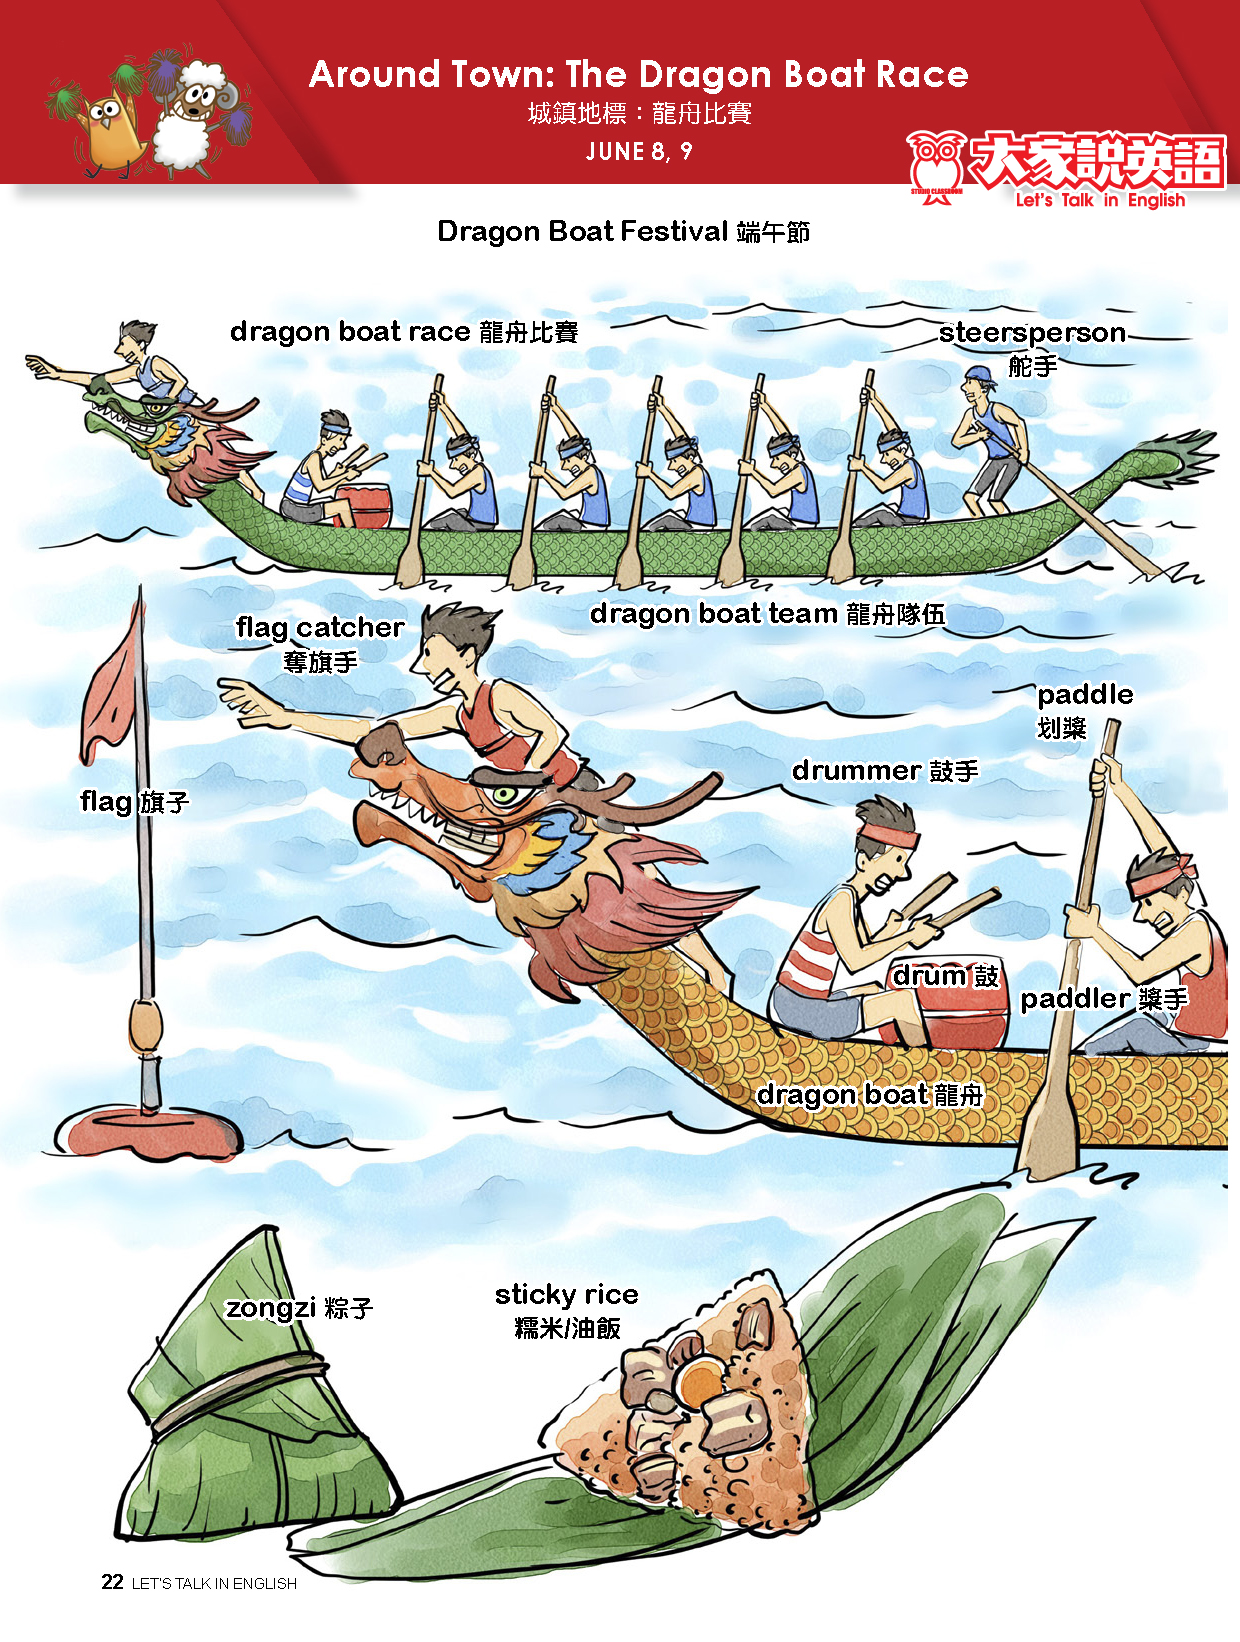 【Visual English】Around Town: The Dragon Boat Race